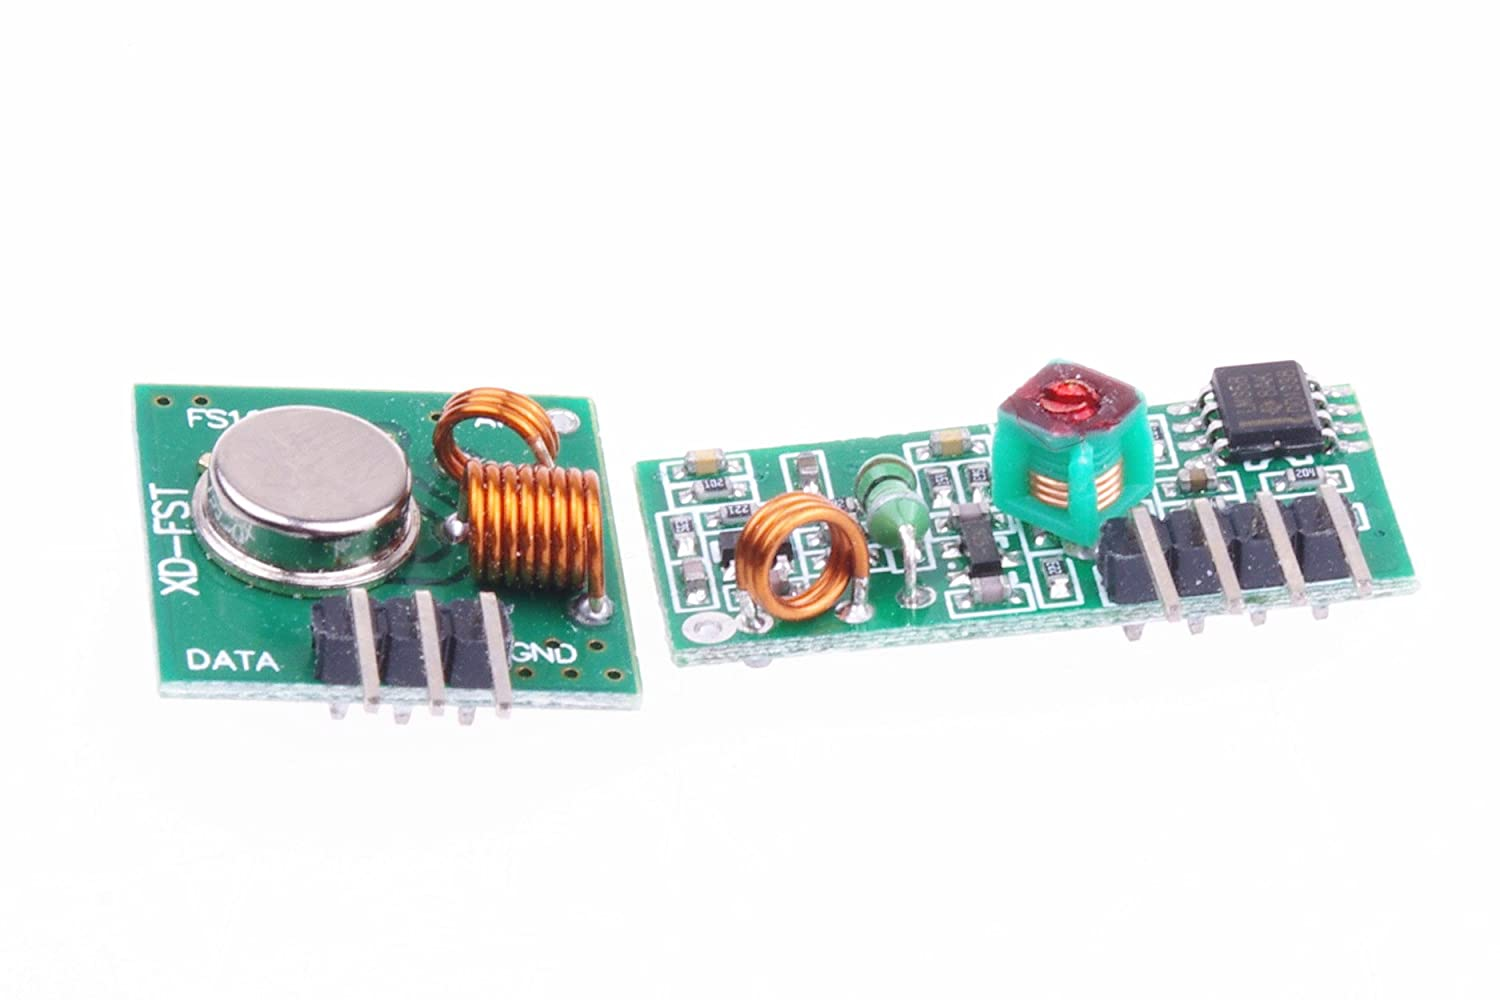 Smakn 315mhz Rf Transmitter And Receiver Link Kit For This Is Probably Become The Simplest Radio Frequency Arduino Arm Mcu Cell Phones Accessories